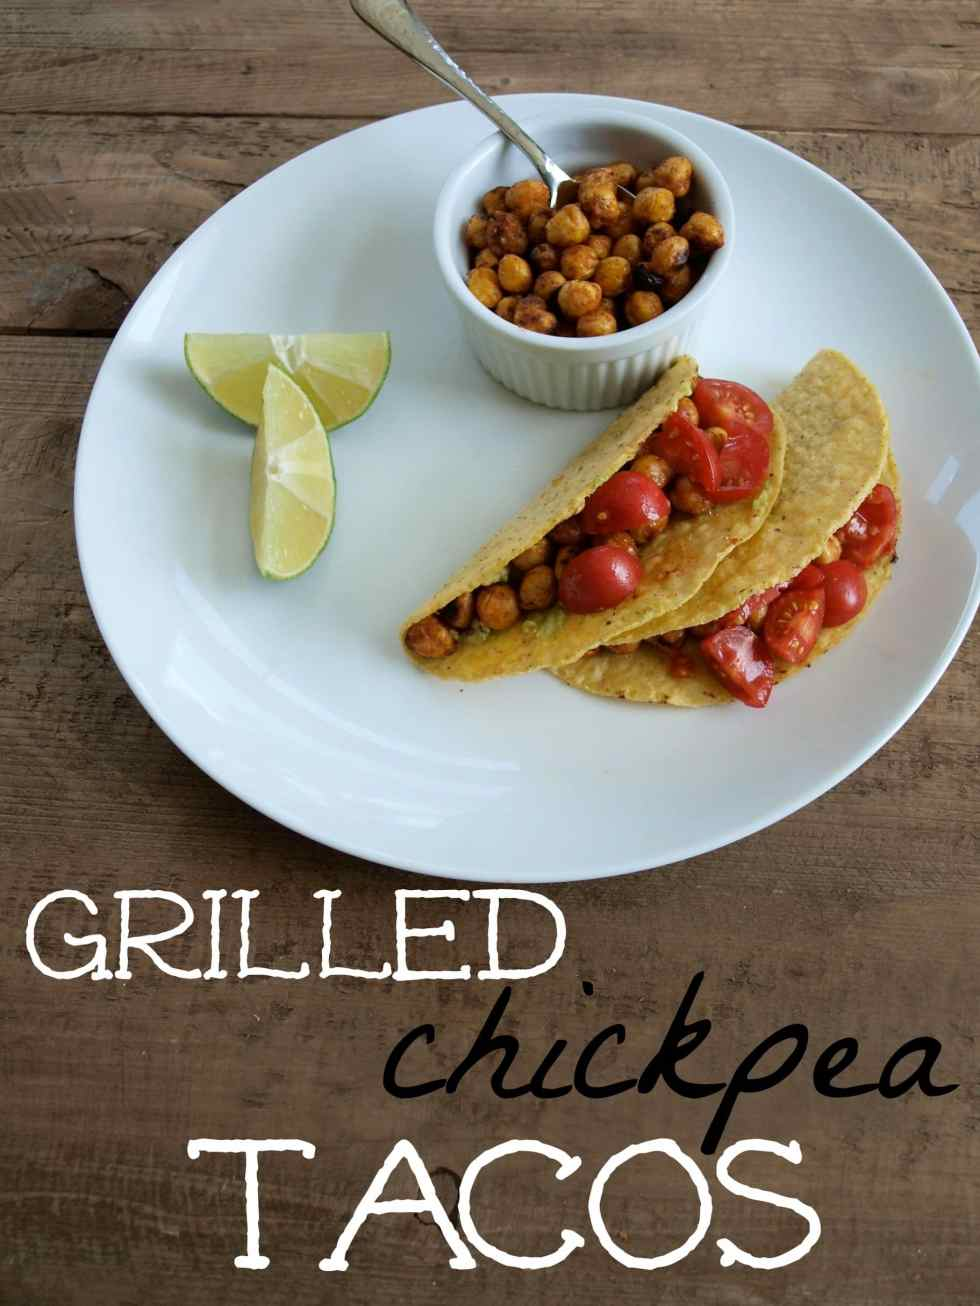 Grilled chickpea tacos! Who says the grill is for meat?! #vegan #meatlessmonday